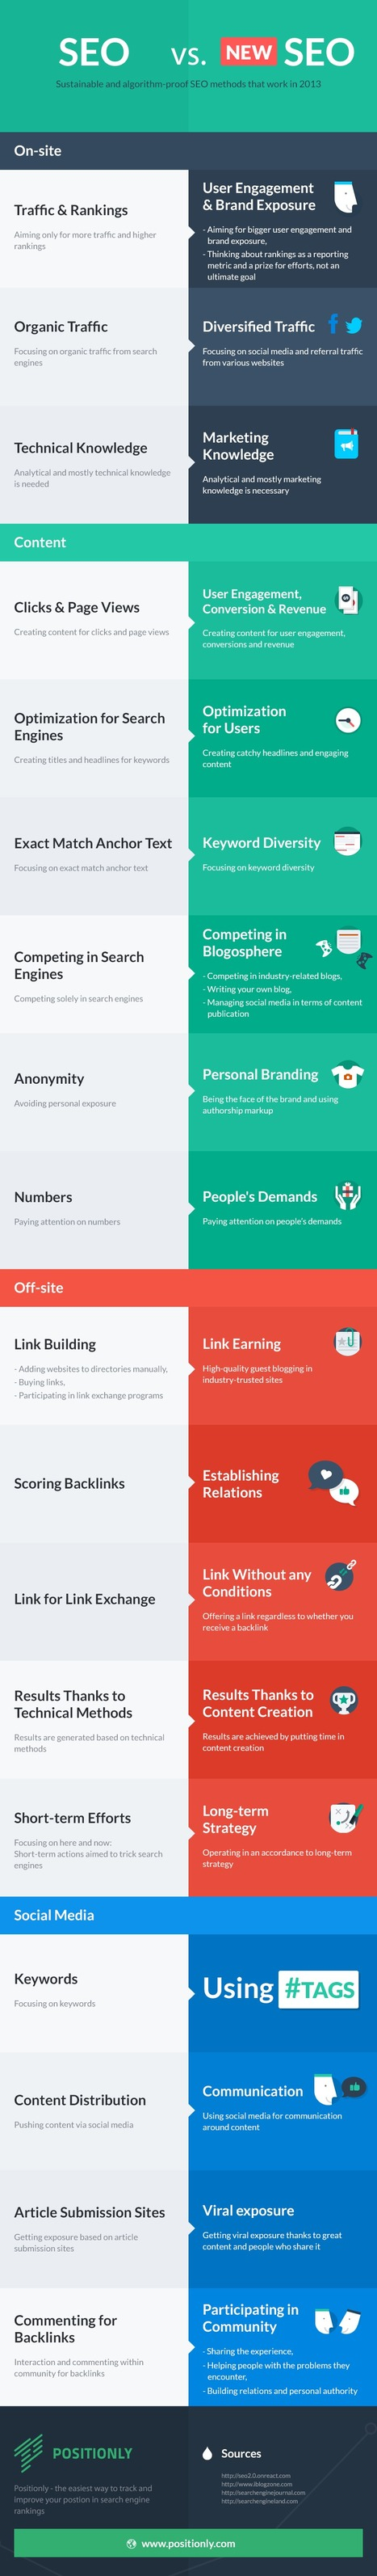 Sustainable SEO Methods - Before and Now INFOGRAPHIC | MarketingHits | Scoop.it